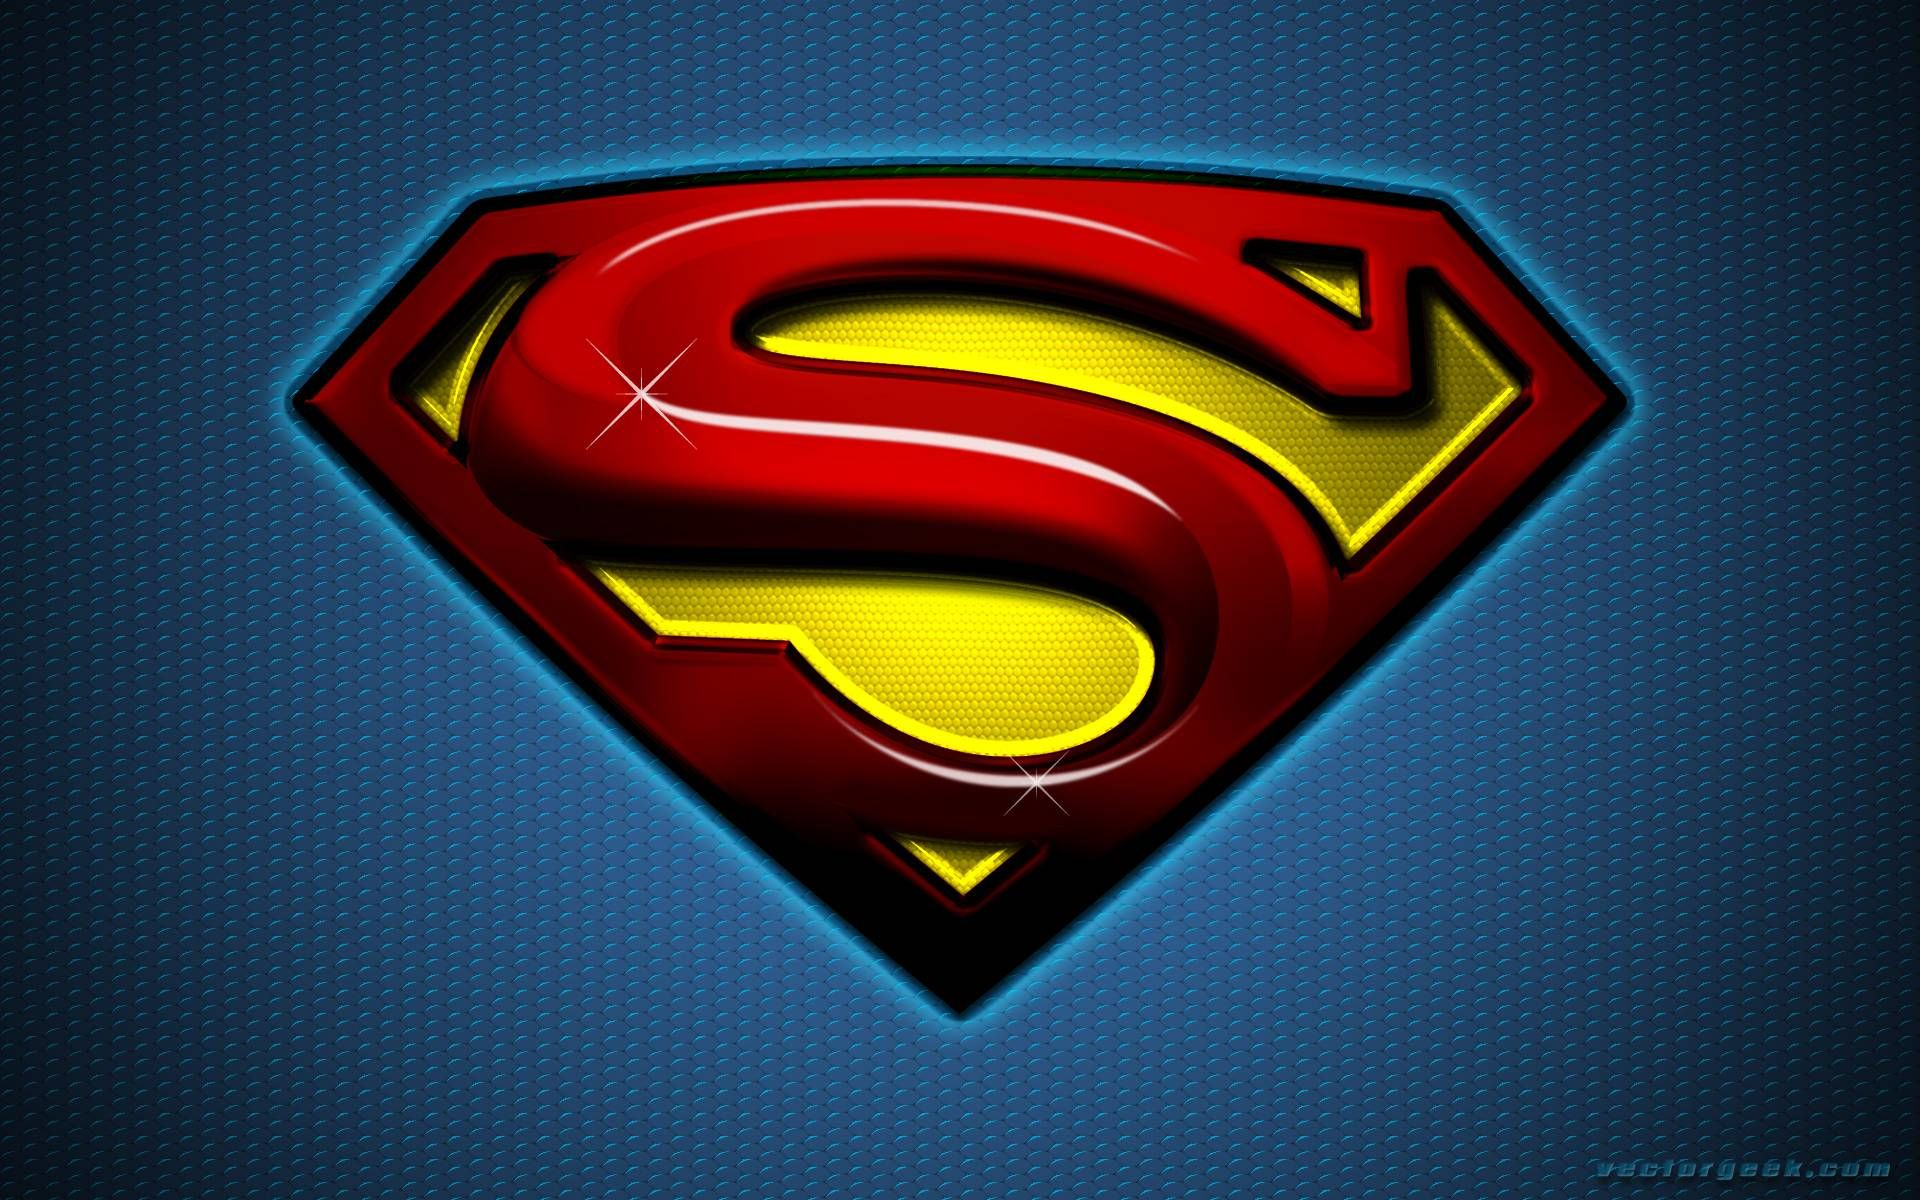 superman logo wallpapers - full hd wallpaper search | Комиксы и